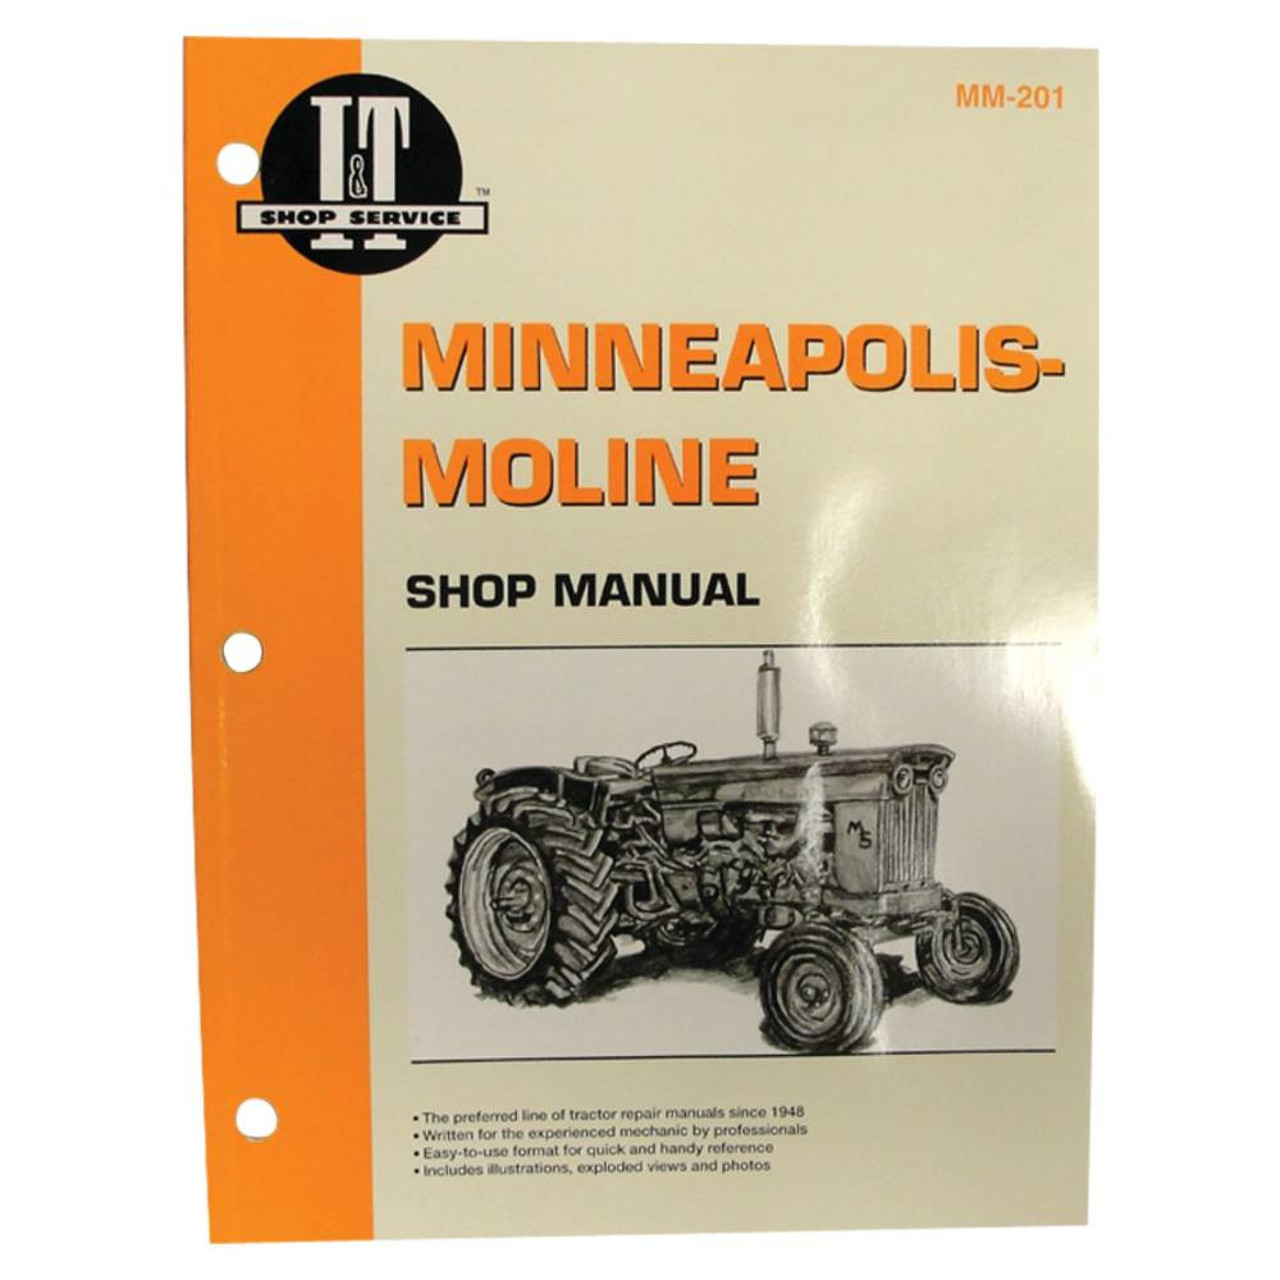 medium resolution of new service manual for minneapolis moline tractor mm201 335 4 5 battery wire diagram avery a tractor wire diagrams